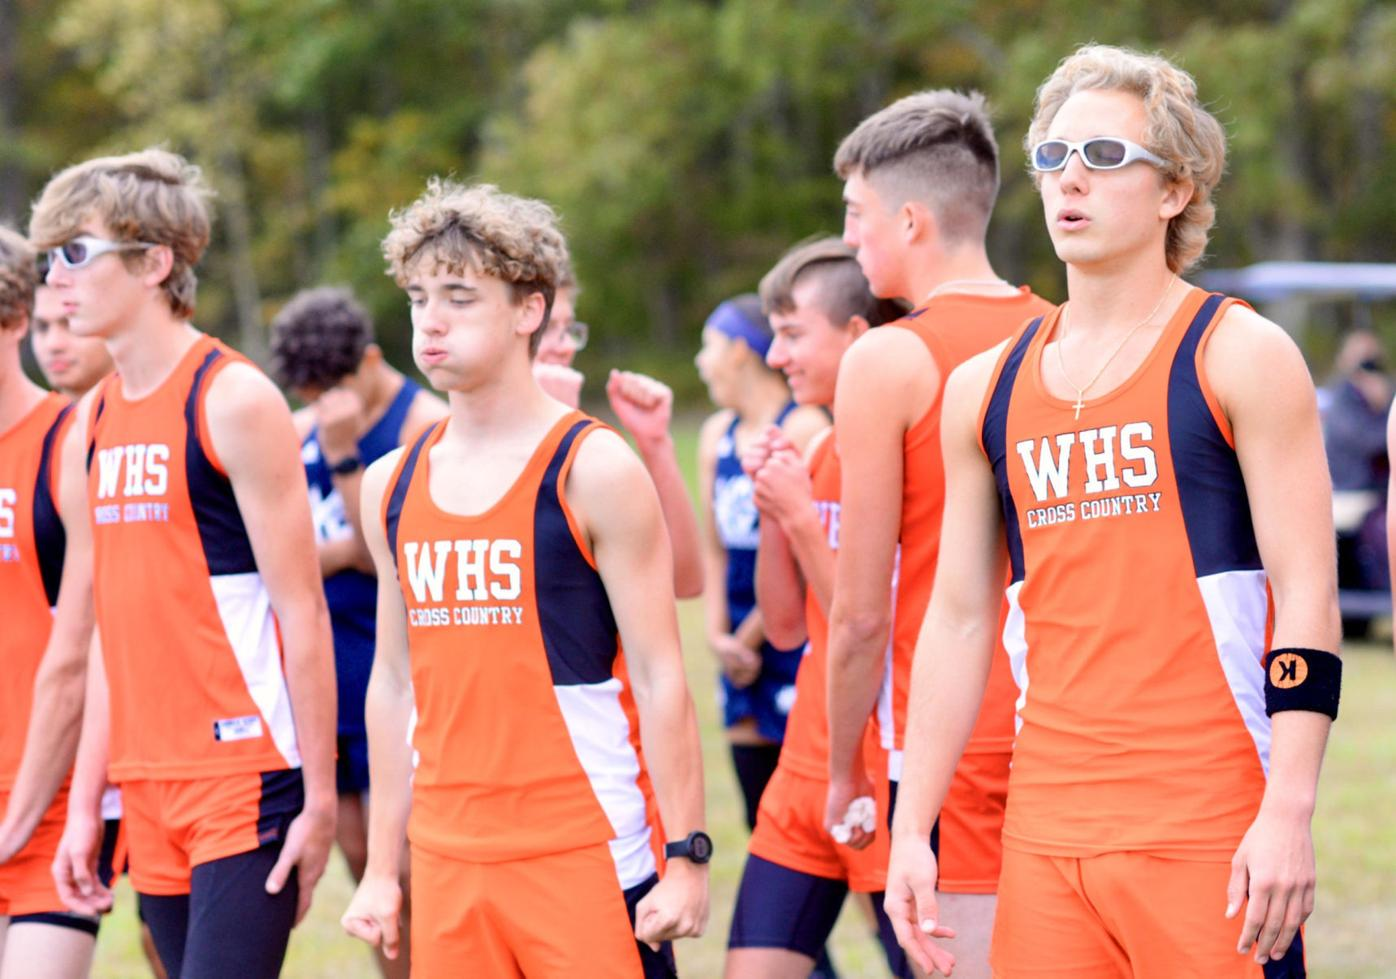 PIAA Cross Country Championships Preview Capsule